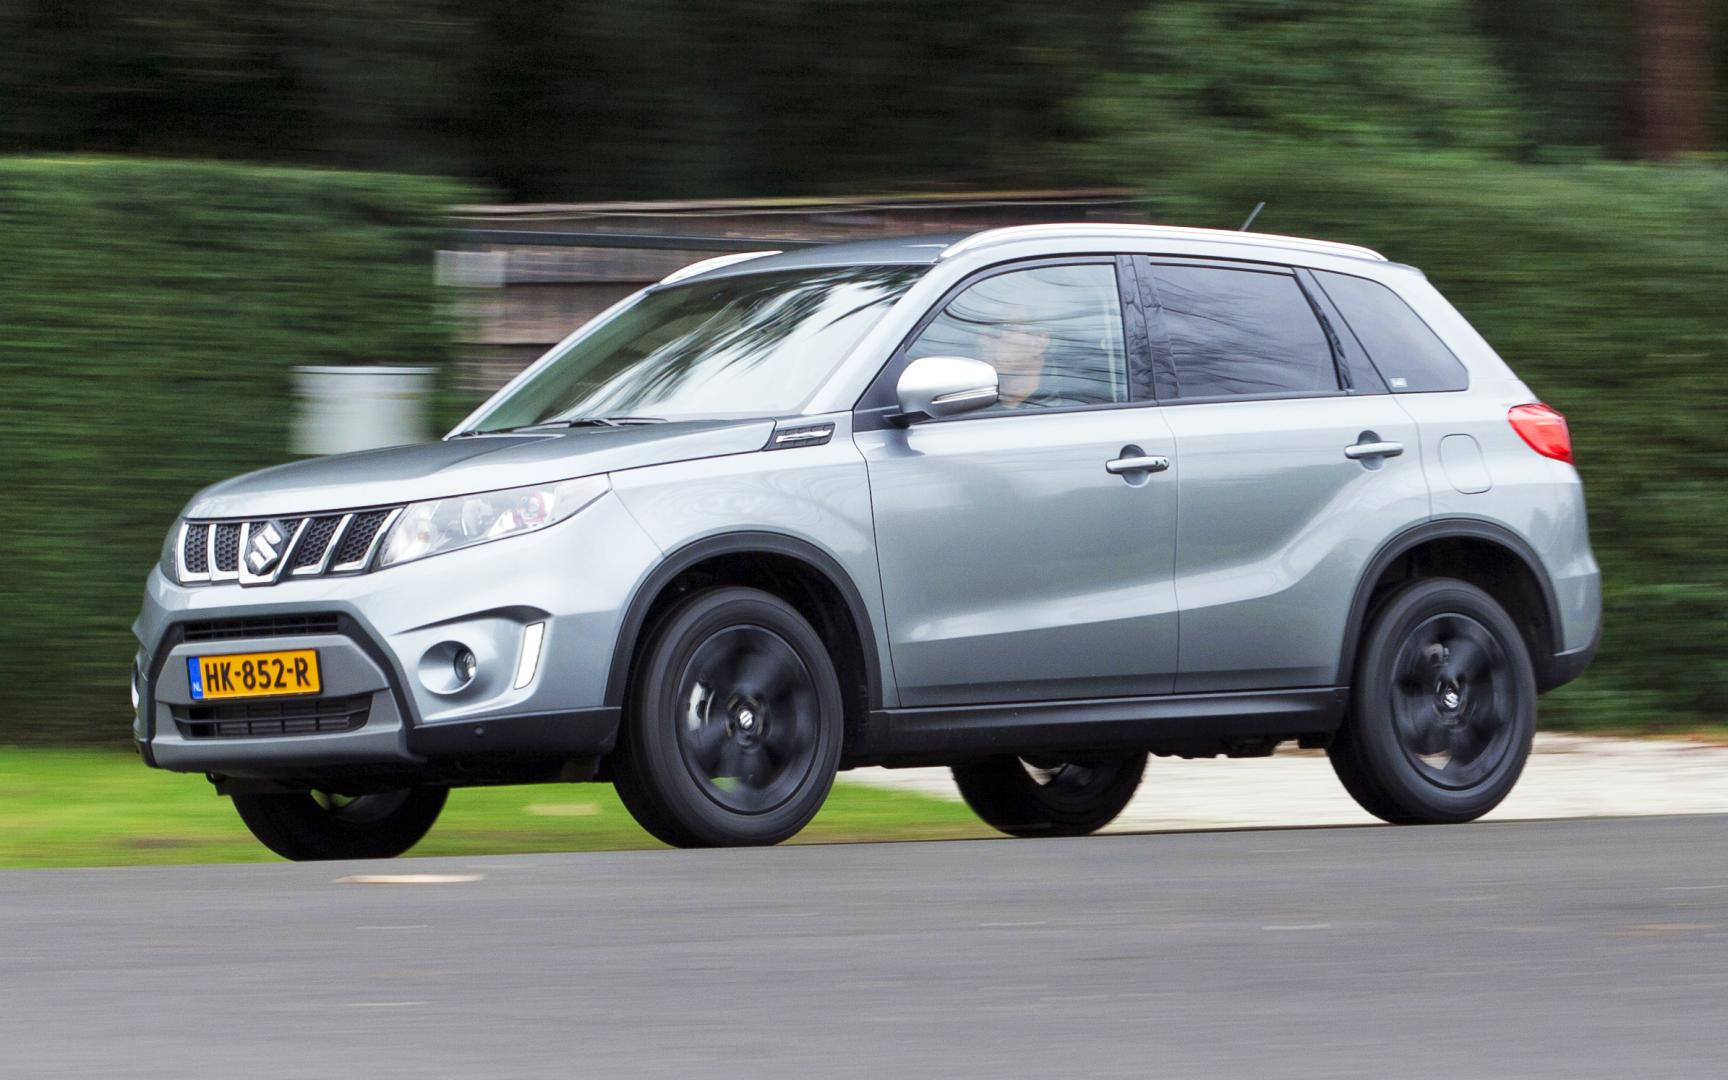 suzuki vitara 1 4 s boosterjet 2015 test en specificiaties topgear. Black Bedroom Furniture Sets. Home Design Ideas